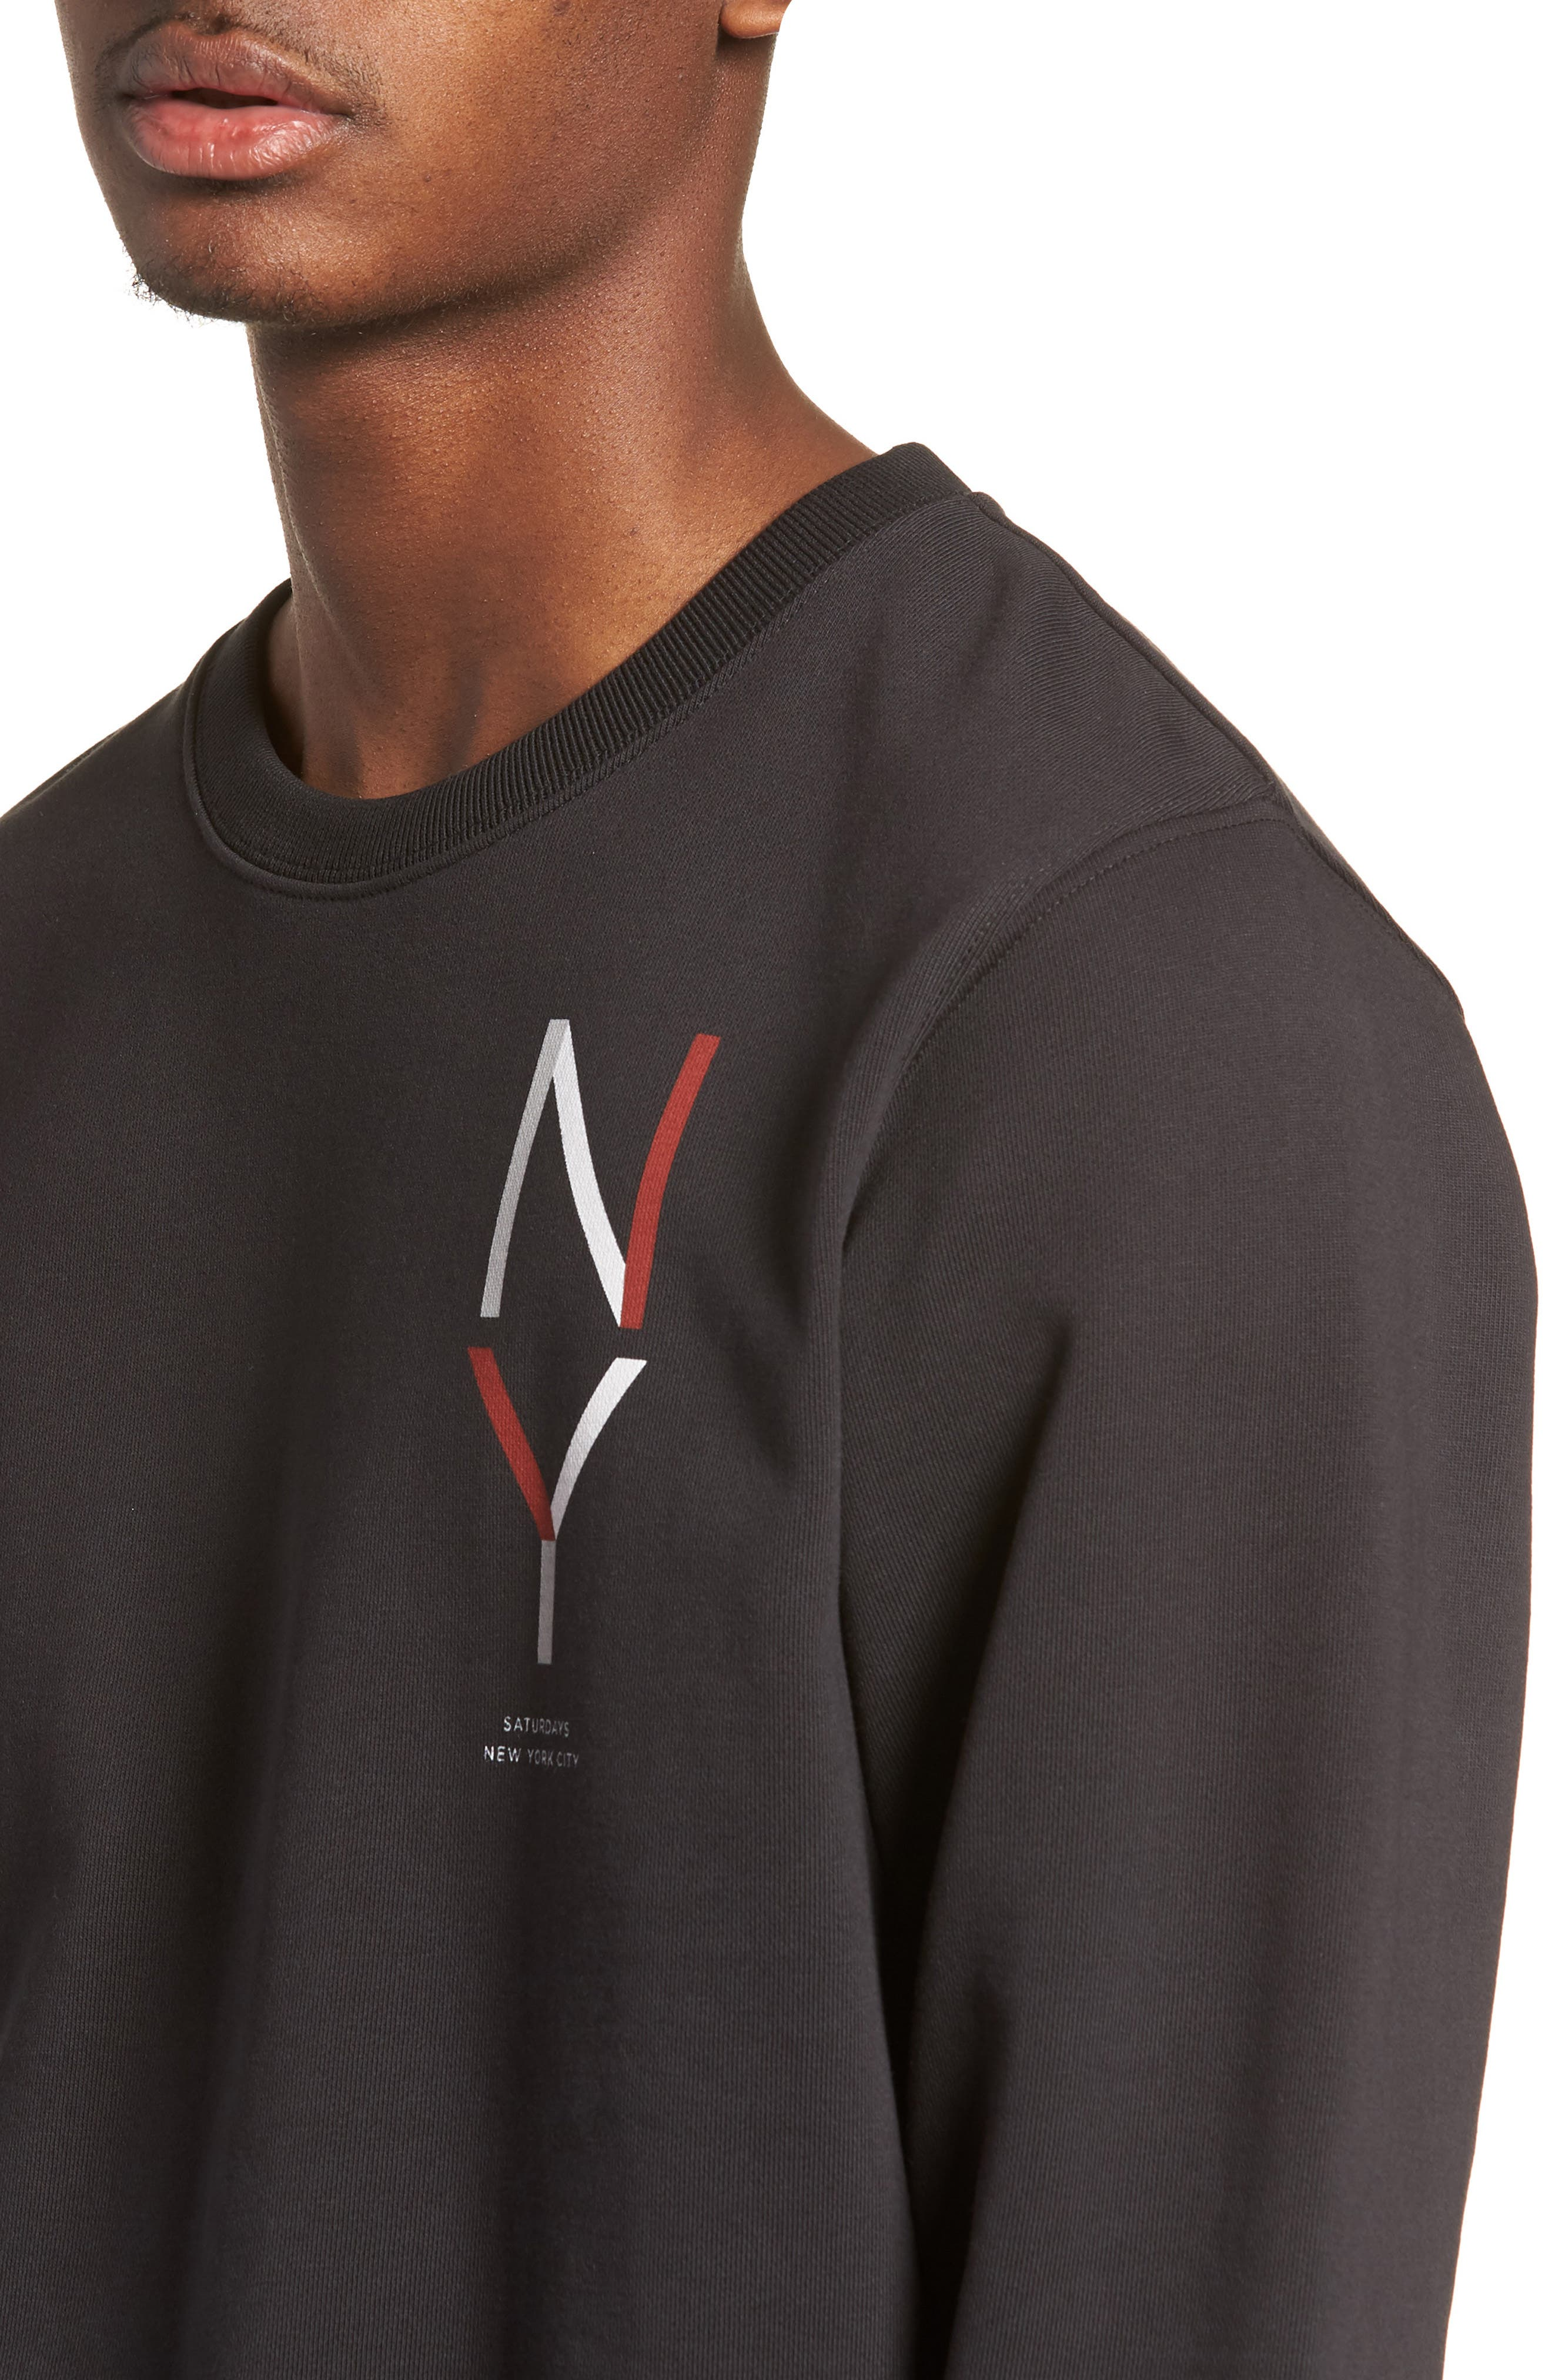 Bowery NY Sweatshirt,                             Alternate thumbnail 4, color,                             Black